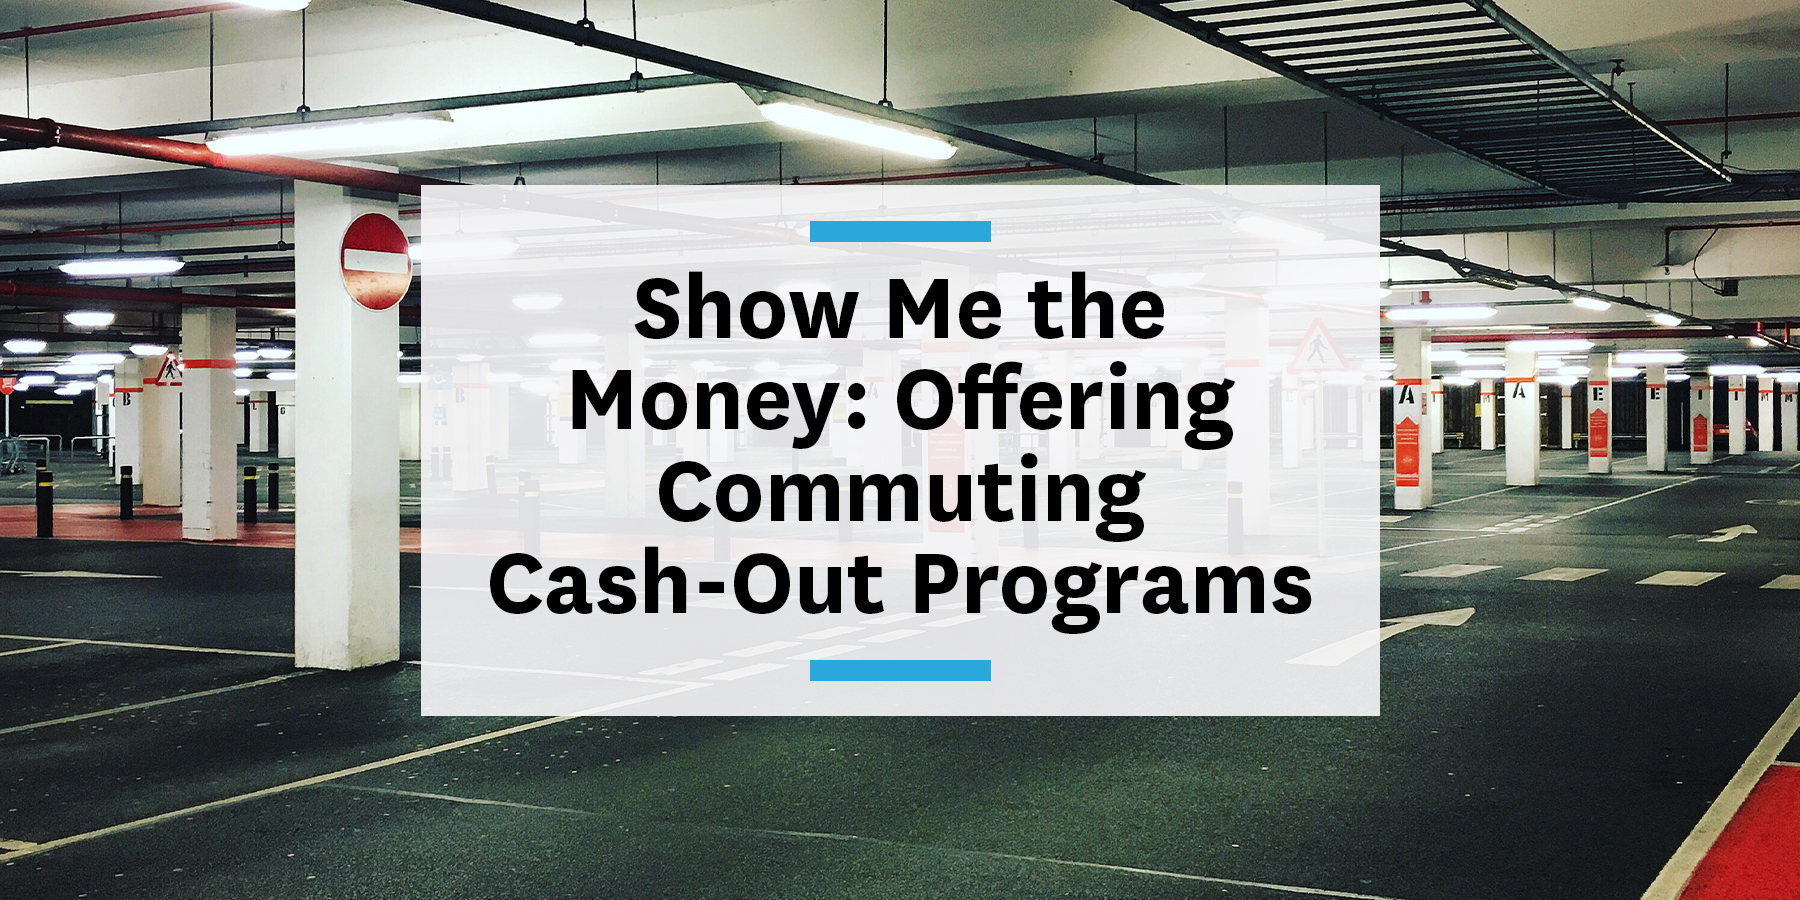 How to offer employees a parking cash-out programs and commuter benefits